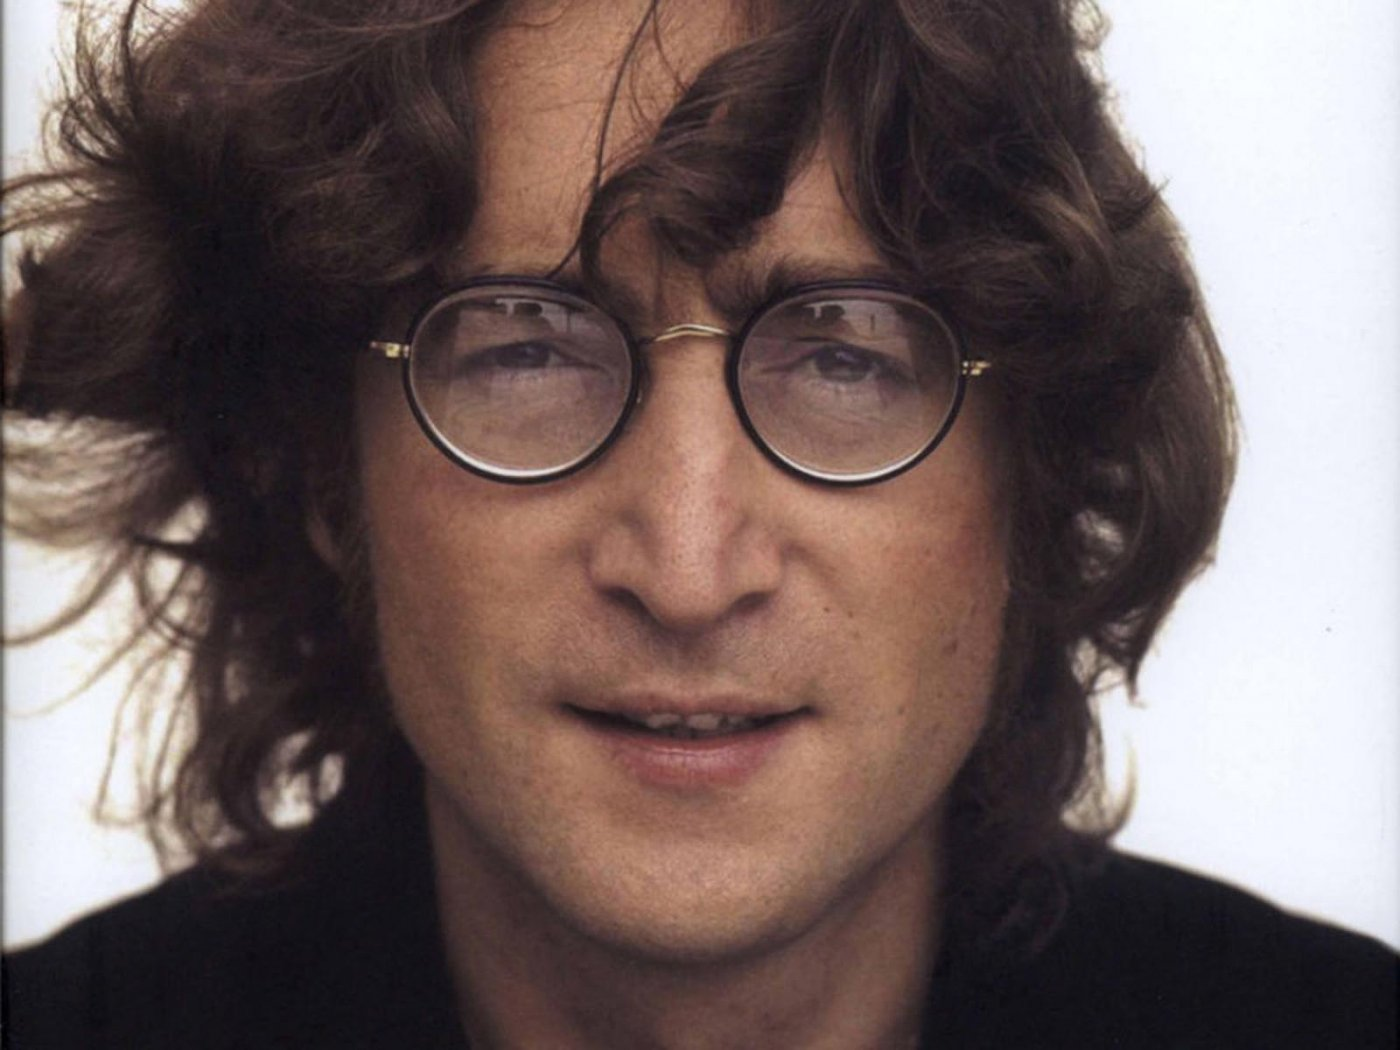 John Lennon was fatally shot by Mark Chapman at the entryway of his The Dakota home, in New York City, on this day in 1980, just moments after having ...